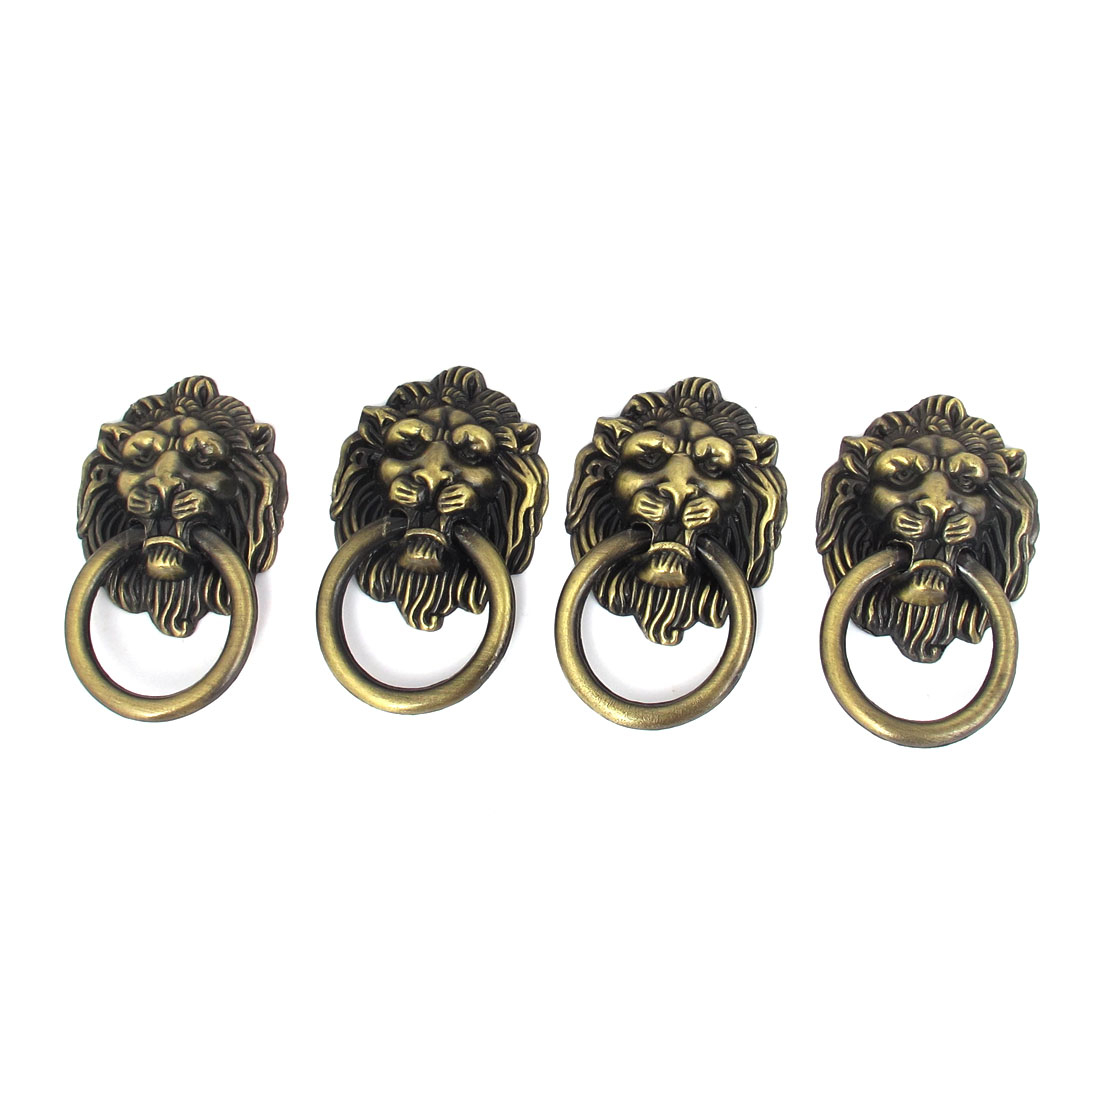 Lion Head Shape Zinc Alloy Pull Knobs Handle 4mm Male Thread Dia Bronze Tone 4 Pcs